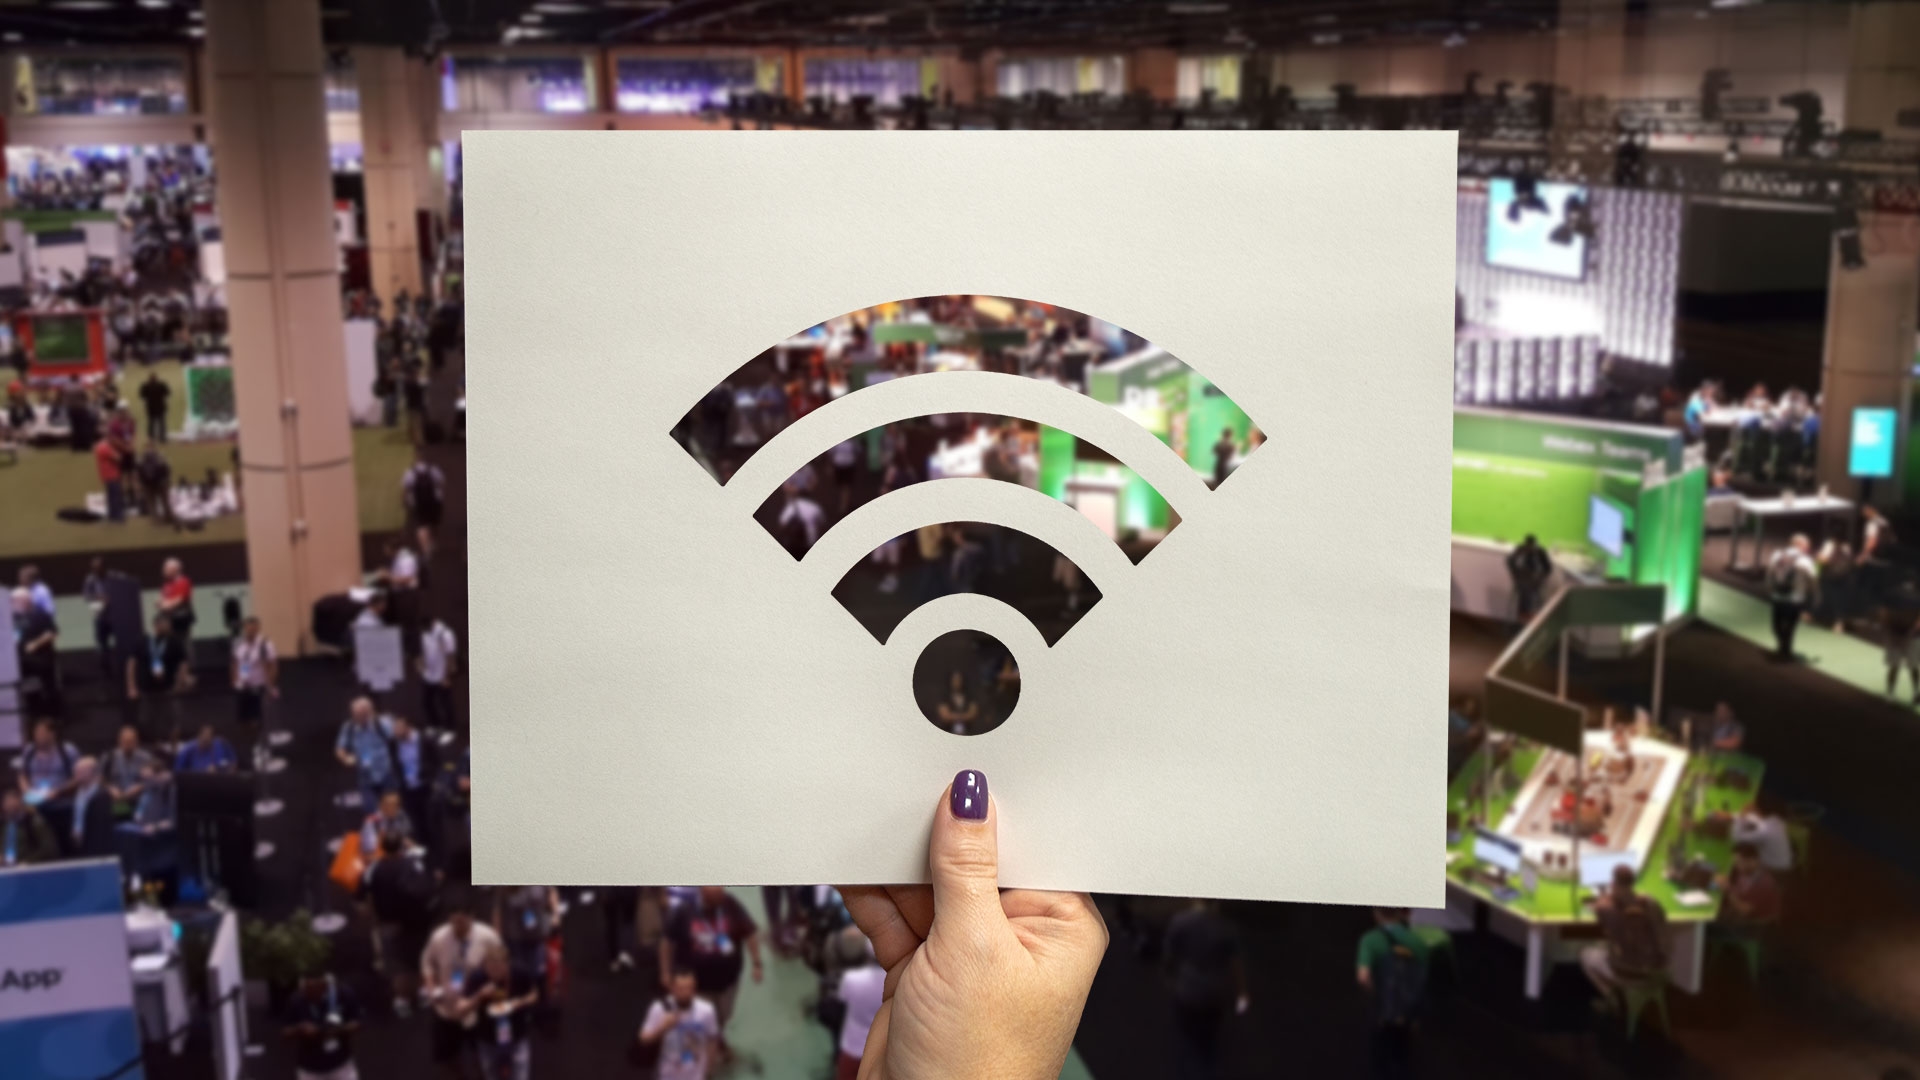 Smart City Networks to Install New WiFi Network at the Orange County Convention Center